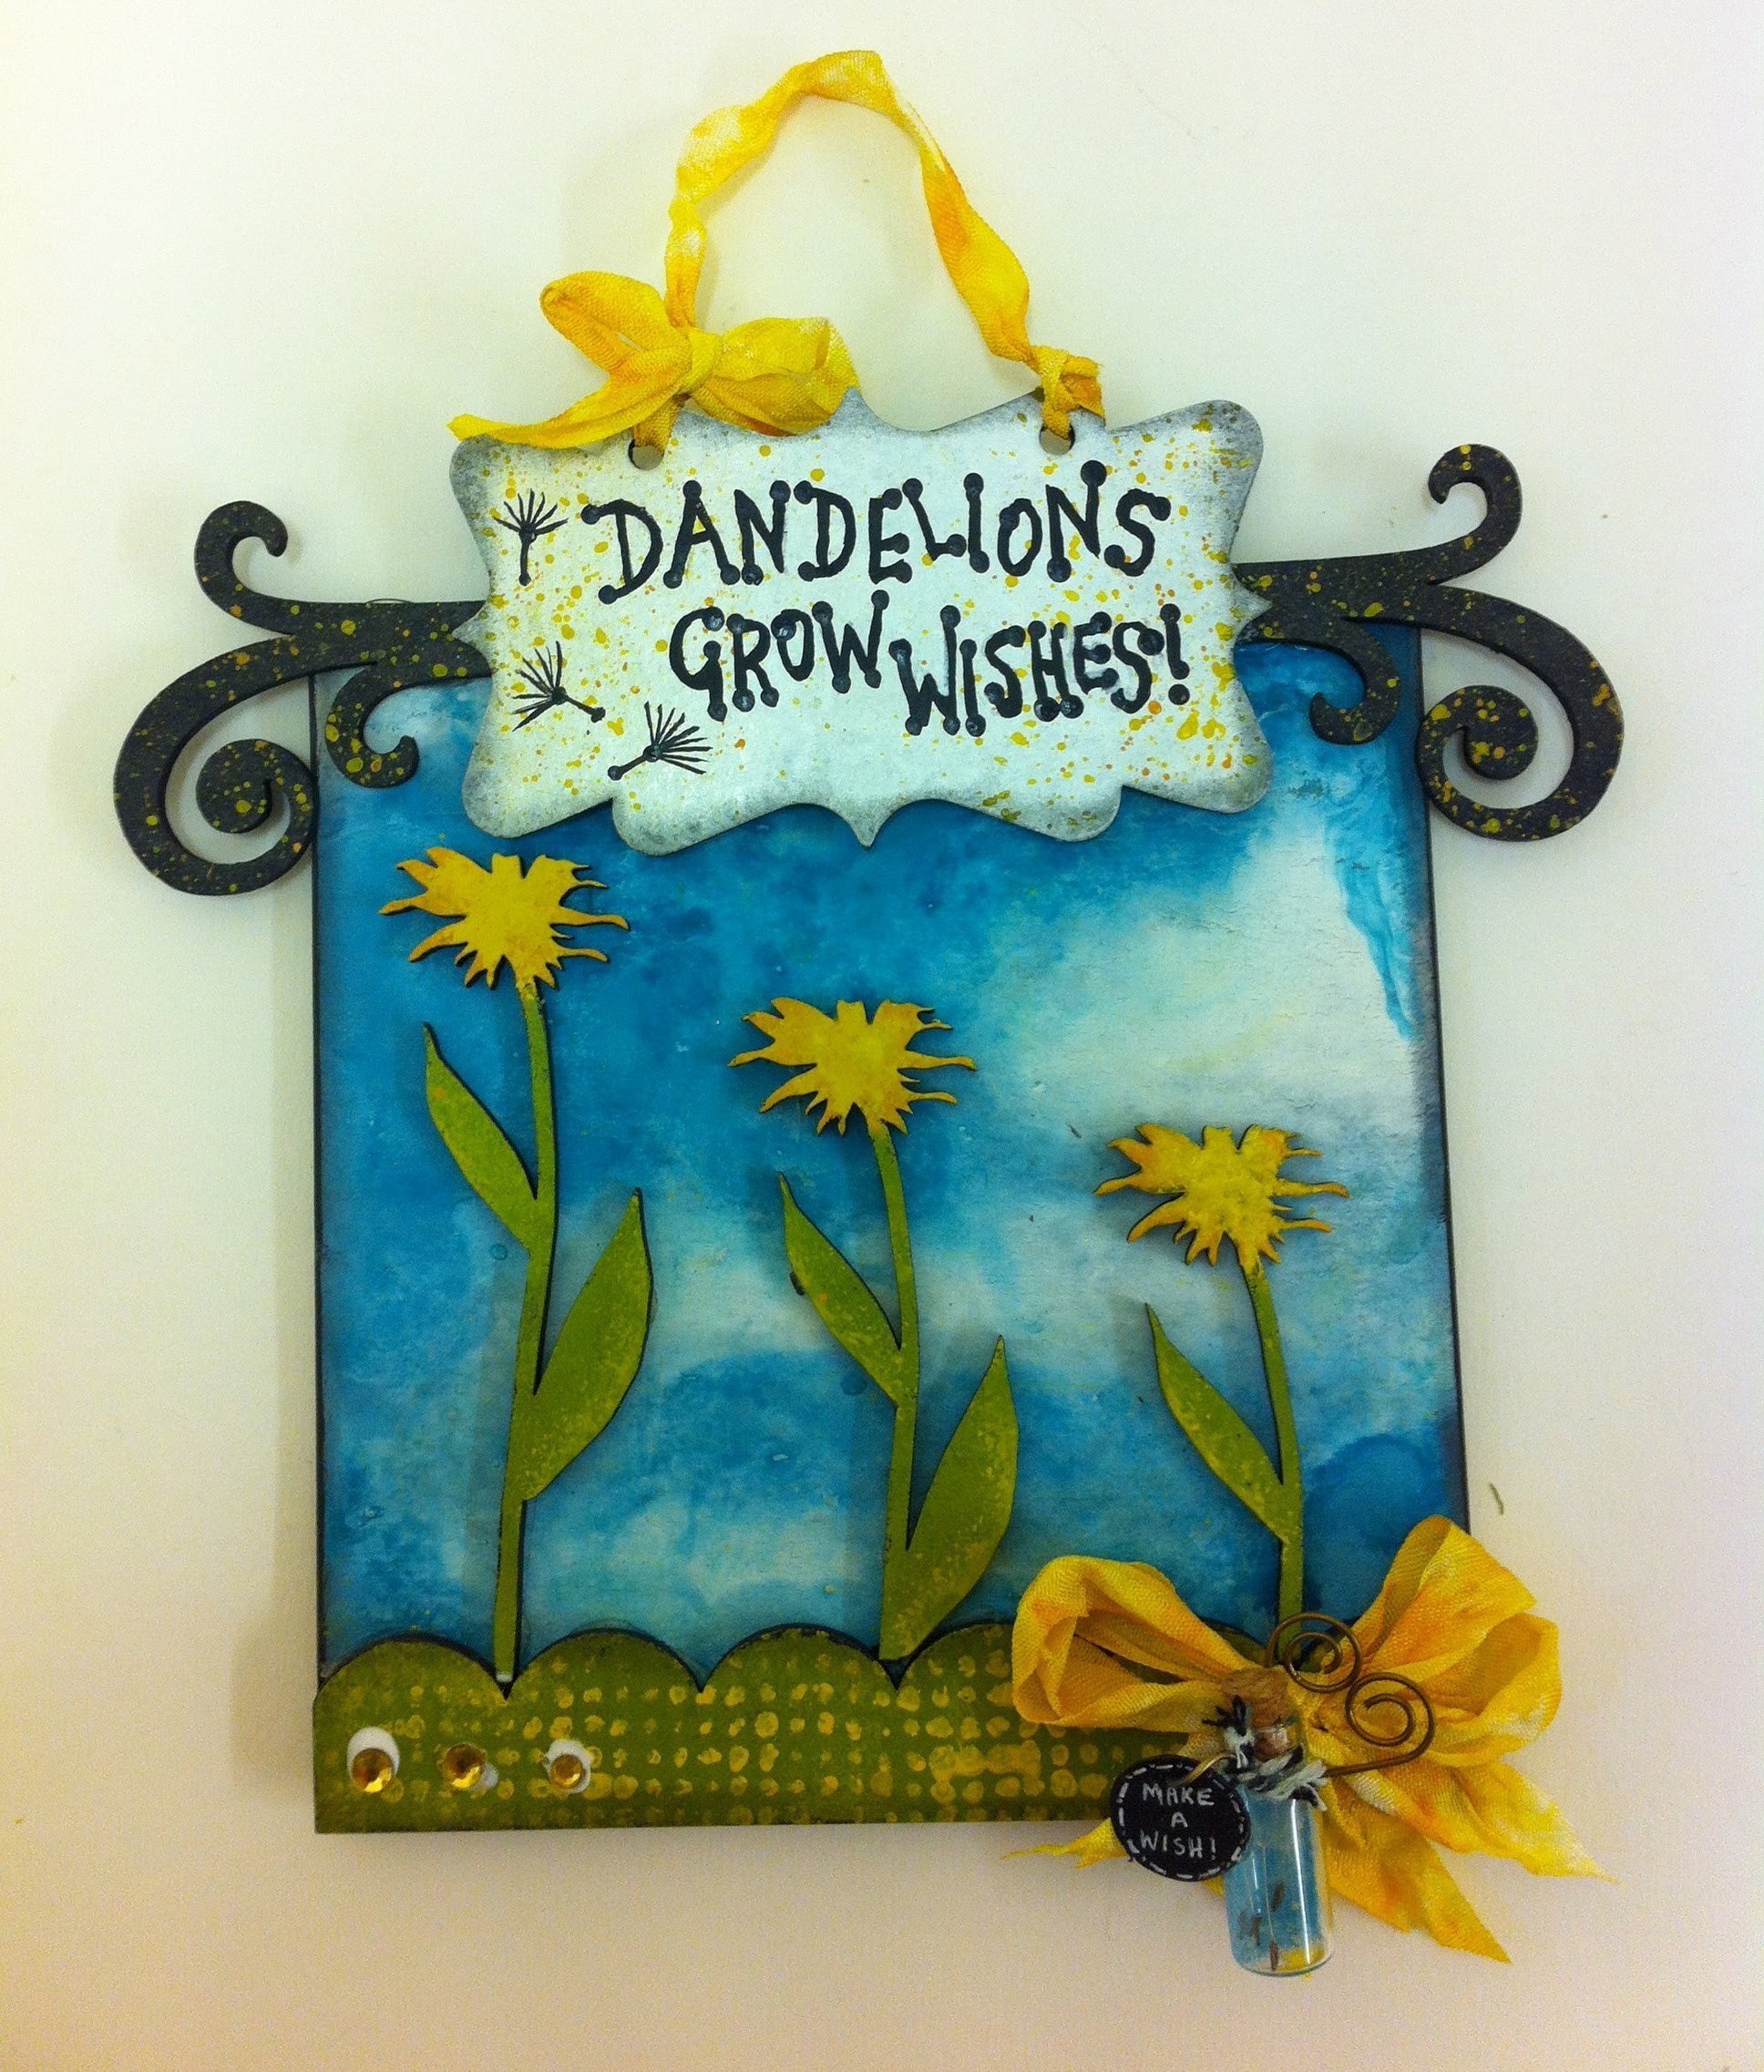 Dandelion Wishes - Home Decor Project Tutorial